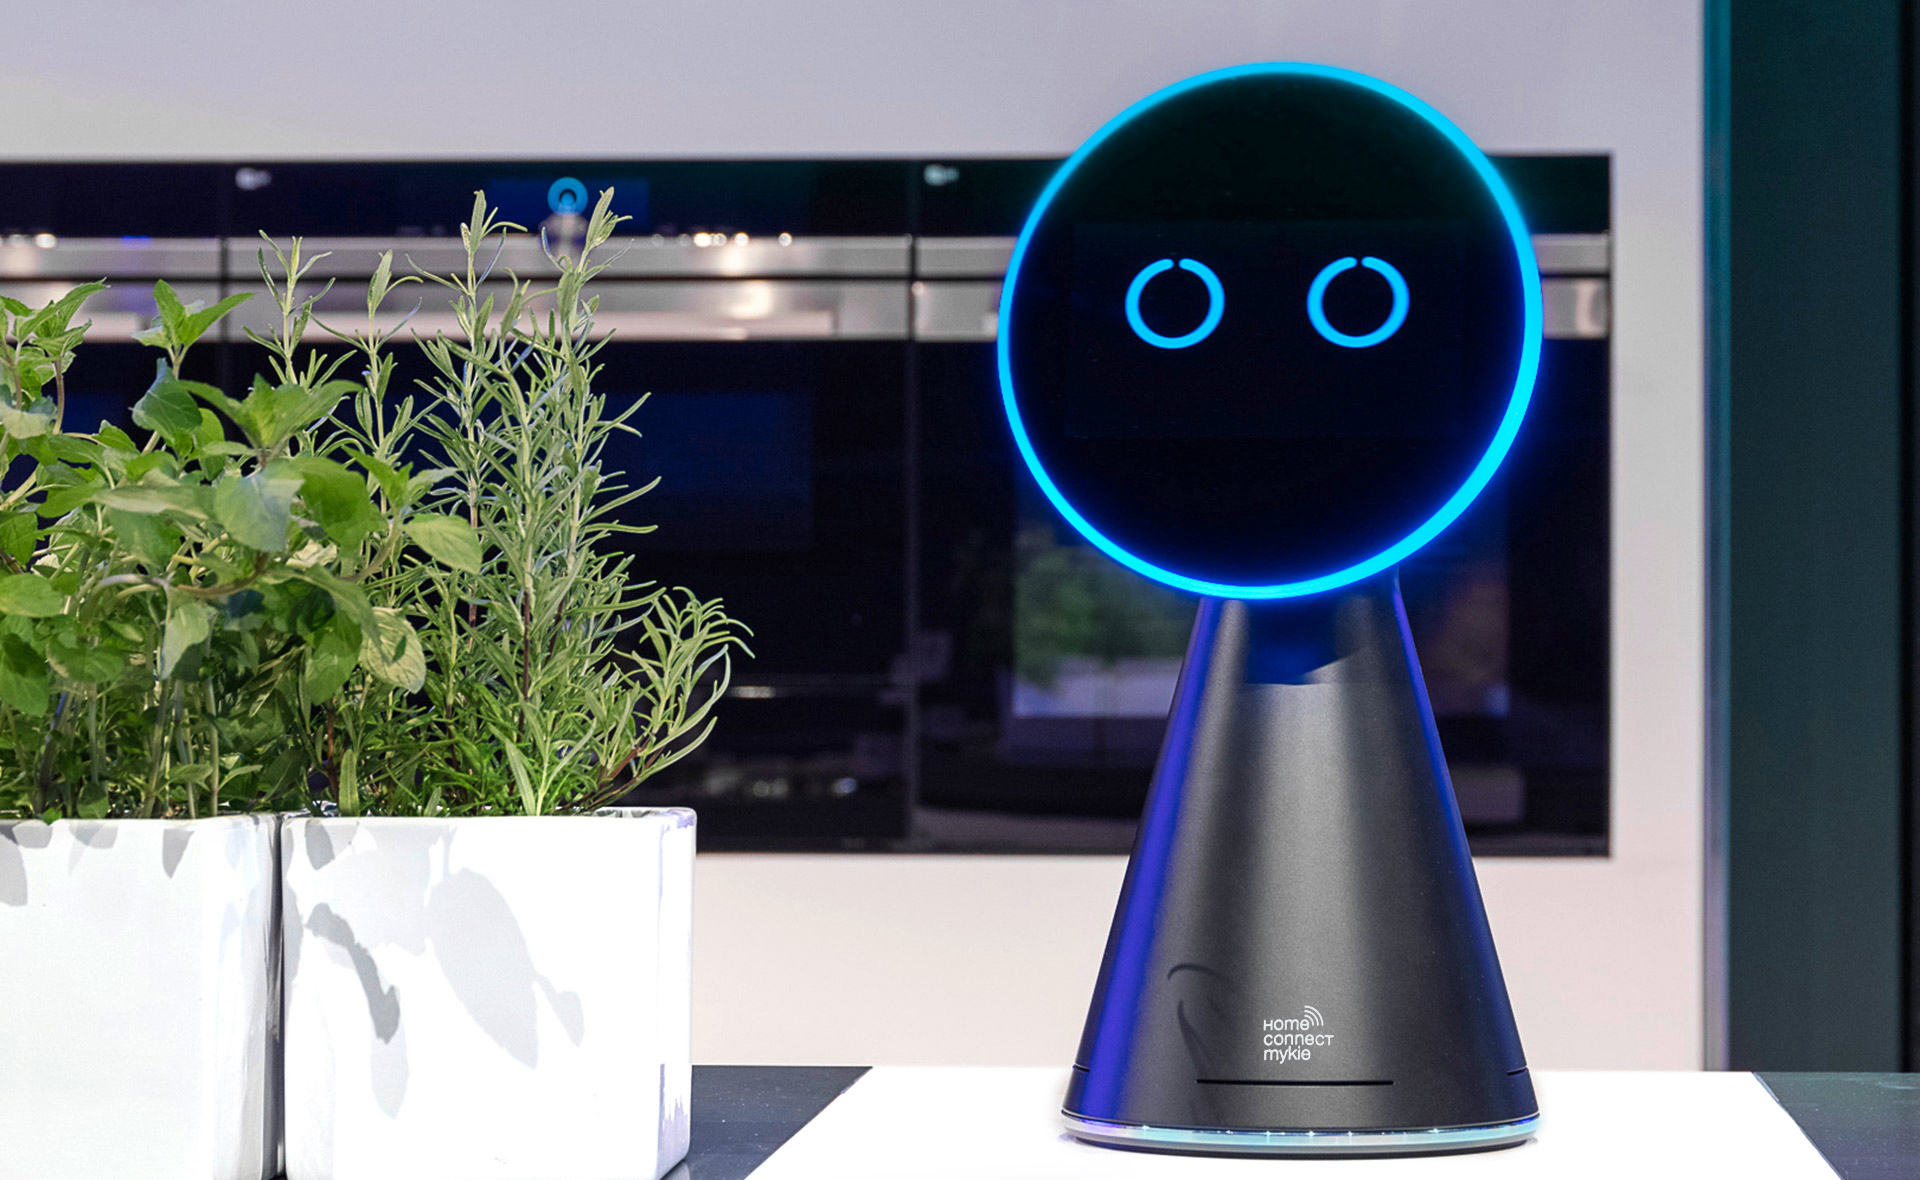 The little black kitchen assistant with the blue glowing face stands next to a green herb pot in the show kitchen.